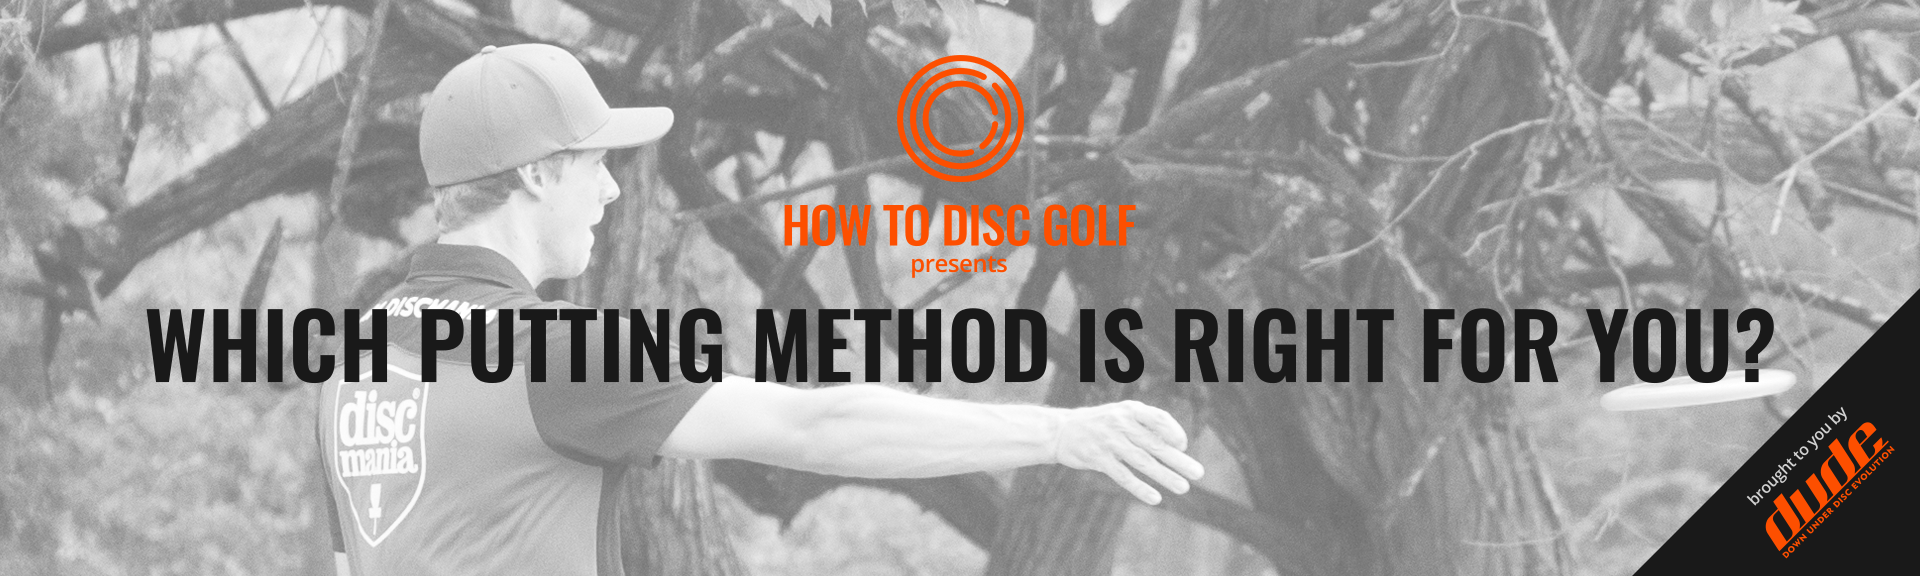 Dude Clothing How to Disc Golf Which putting method is right for you?